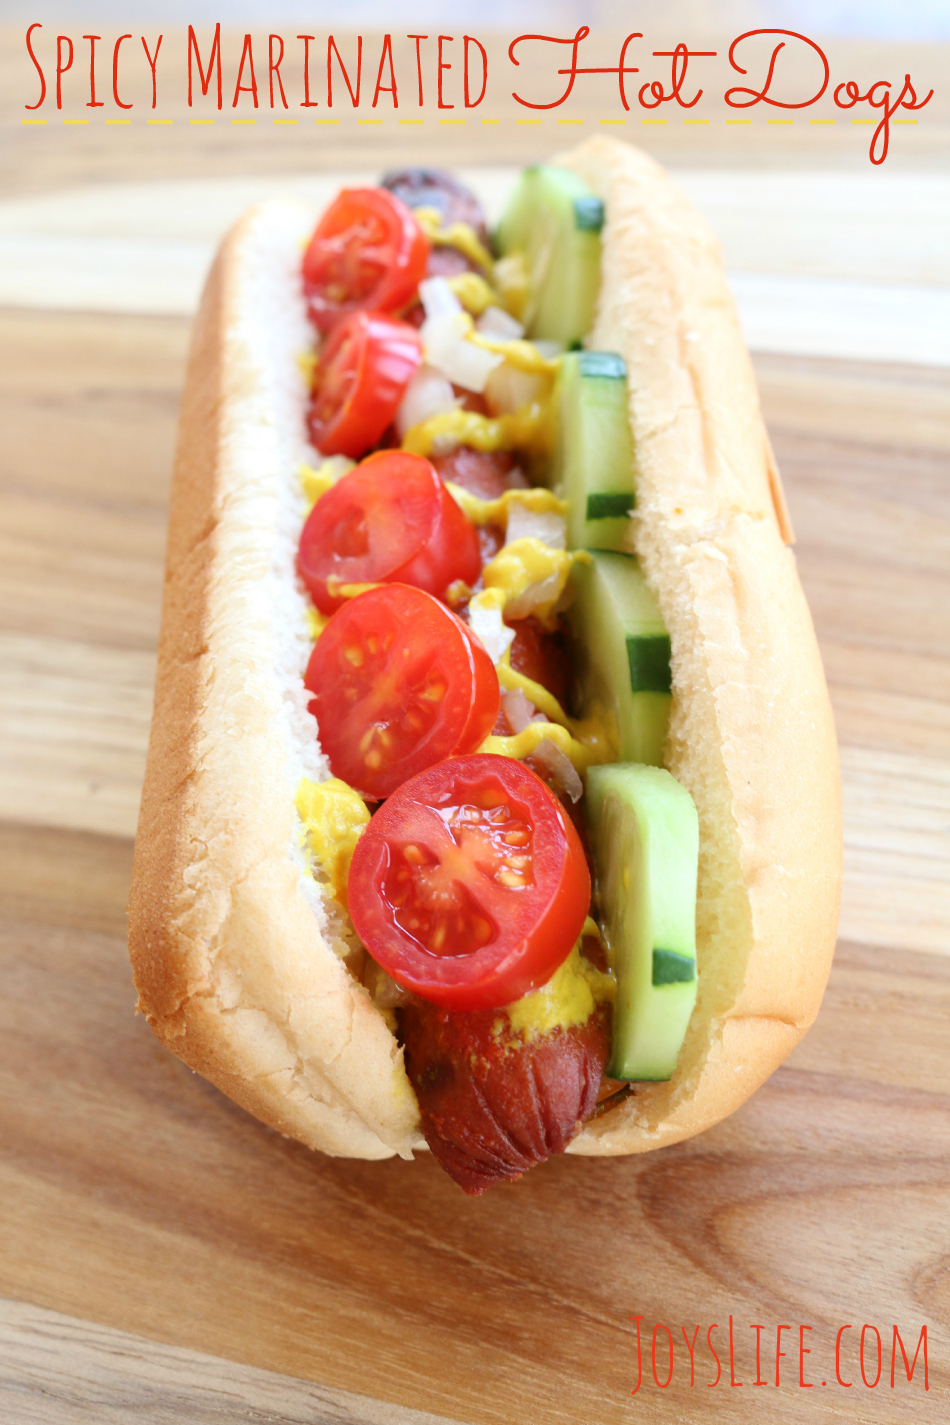 Spicy Marinated Hot Dogs